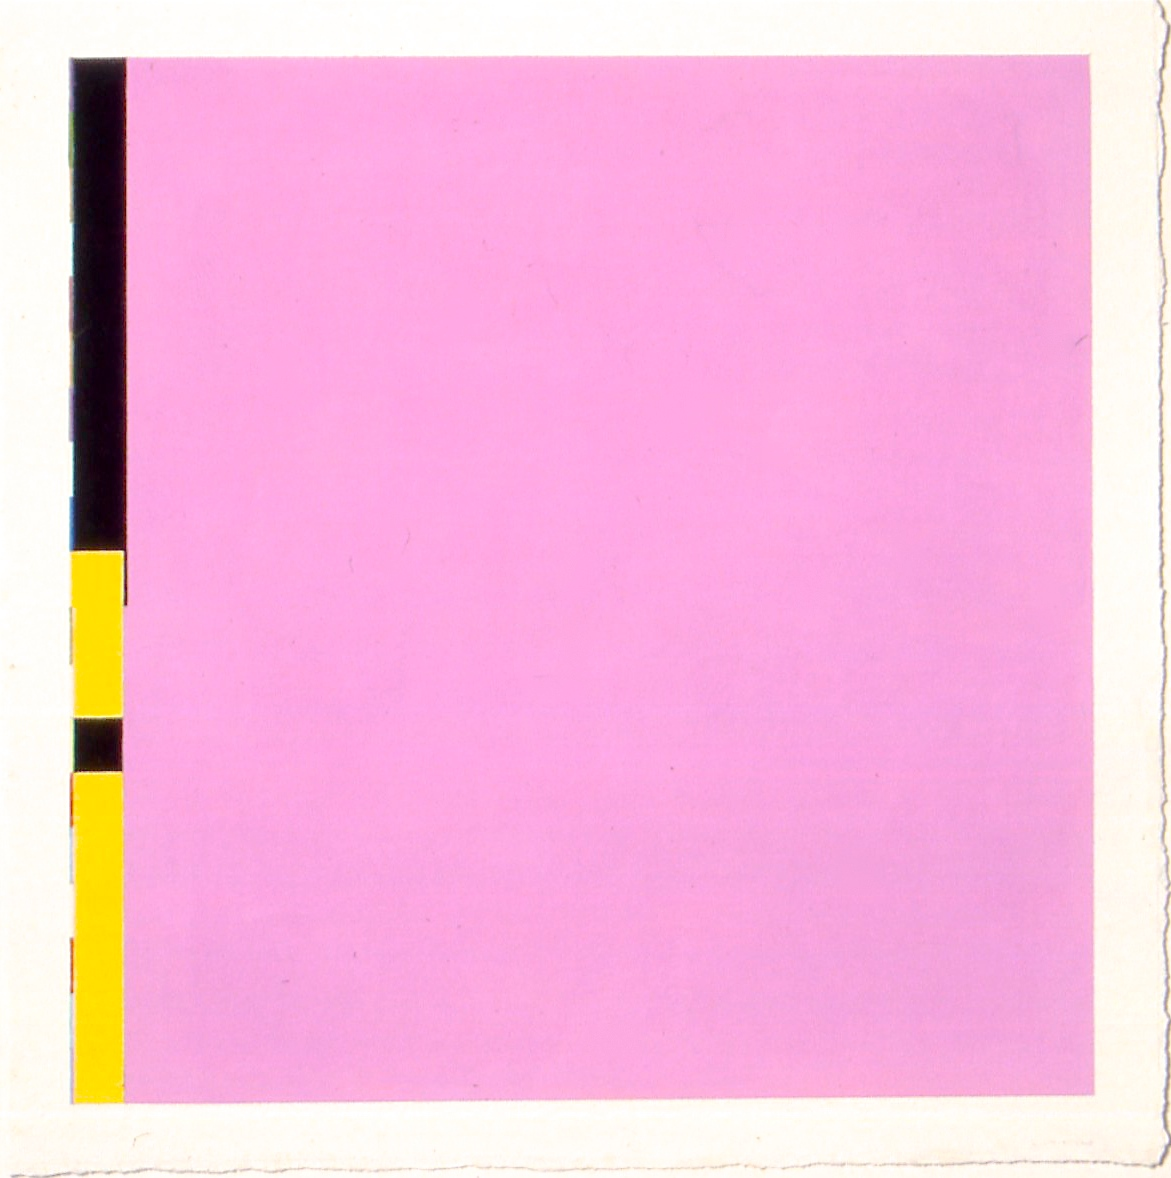 """Untitled (PG13), 2002, gouache and watercolour on paper, 20 3/16""""x20 3/16"""" (image), 22 3/4""""x22 3/4"""" (paper)"""